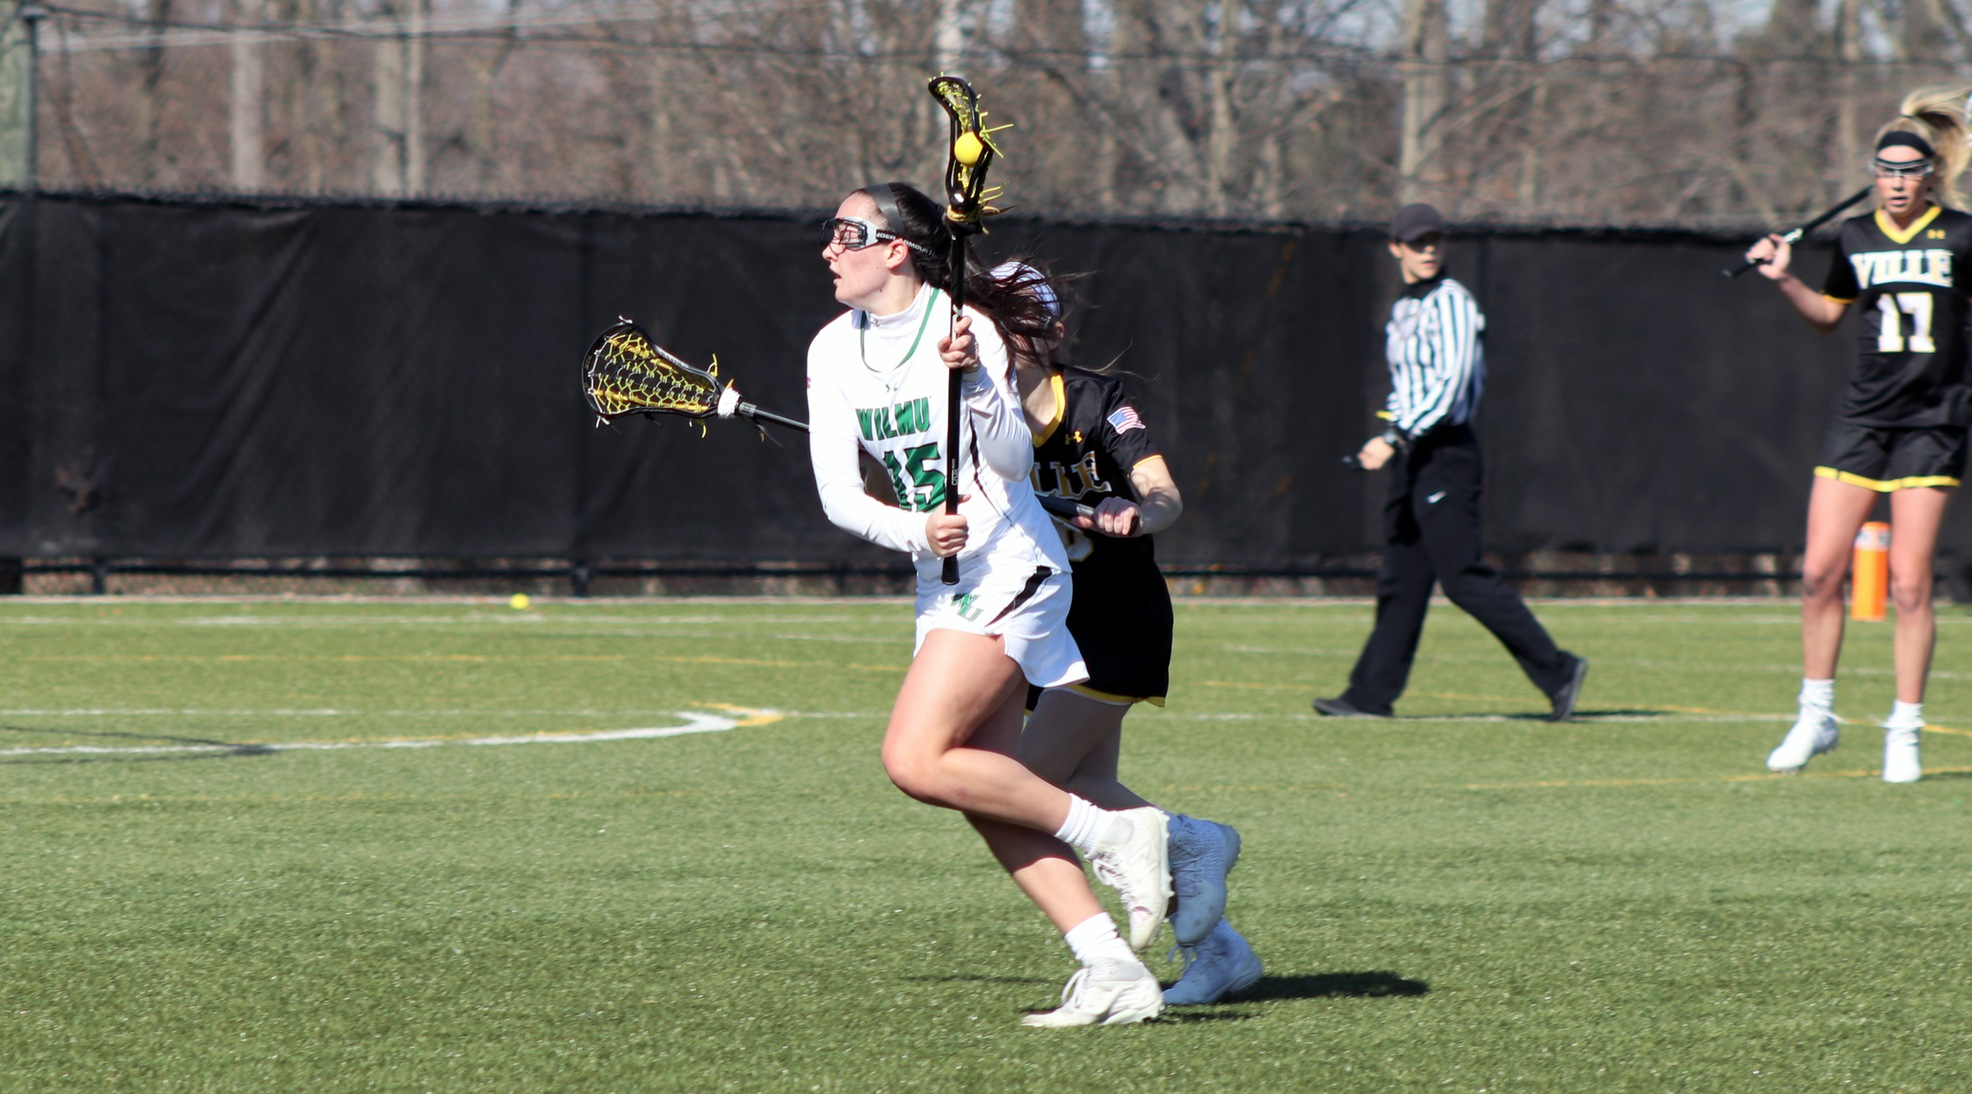 Copyright 2020. Wilmington University. All rights reserved. Photo by Laura Gil. February 22, 2020 vs. Millersville.